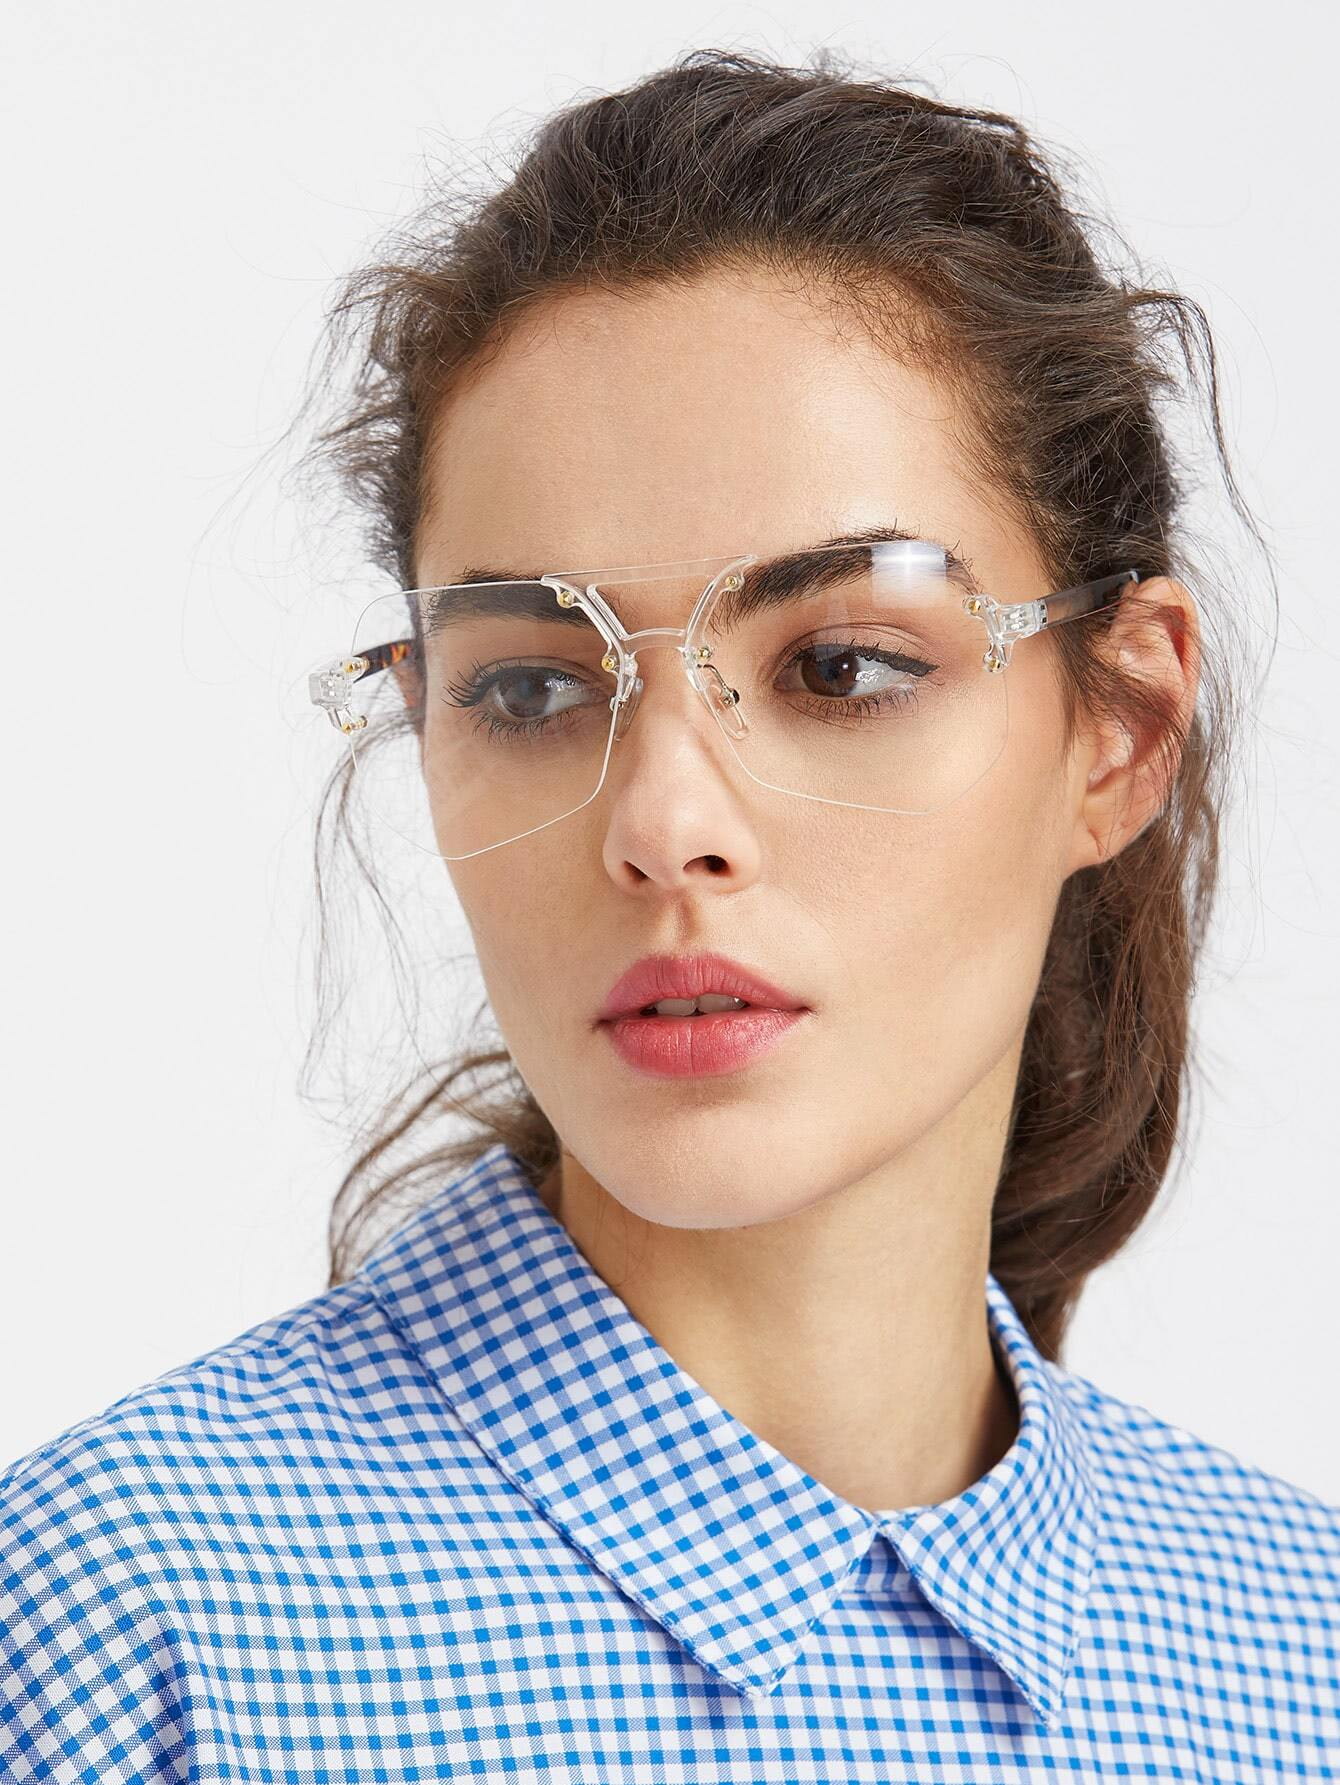 Clear Top Bar Polygon Lens Glasses sunglass170424303